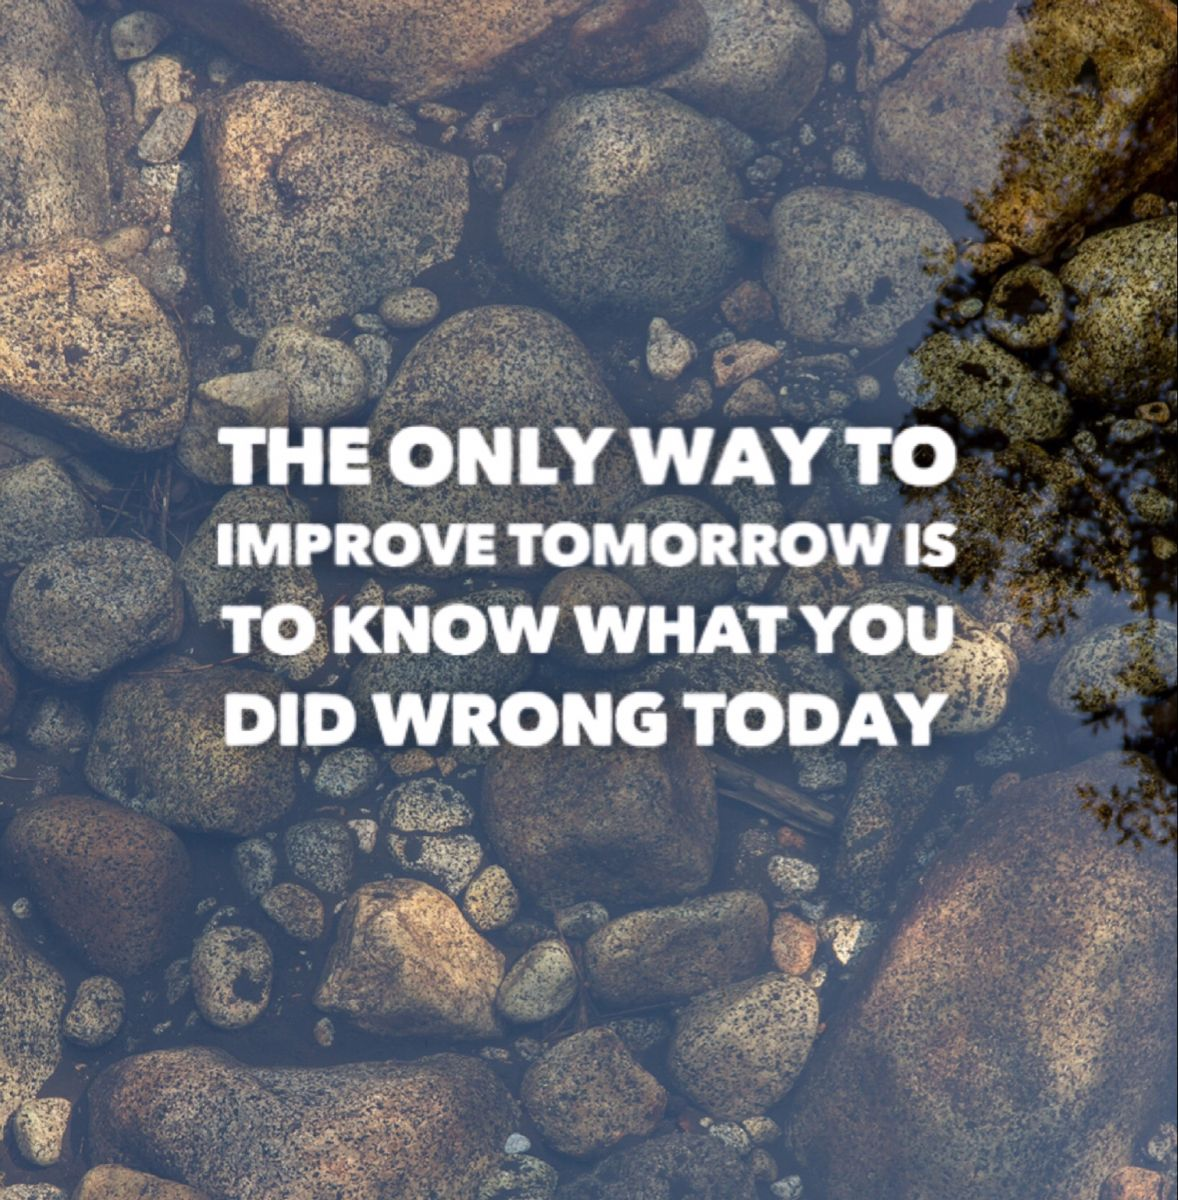 The only way to improve tomorrow is to know what you did wrong today. This quotes is from book the monk who sold his ferrari. For more Quotes from books do follow us and visit our website. #thoughts #tomorrow #today #positive #quoteoftheday #lifechangingbooks #booklovers #bookstoread #inspirationalquote #motivationalquotes #positivequote #deepquotes #shortquotes #quotesaboutlife #quotestoliveby